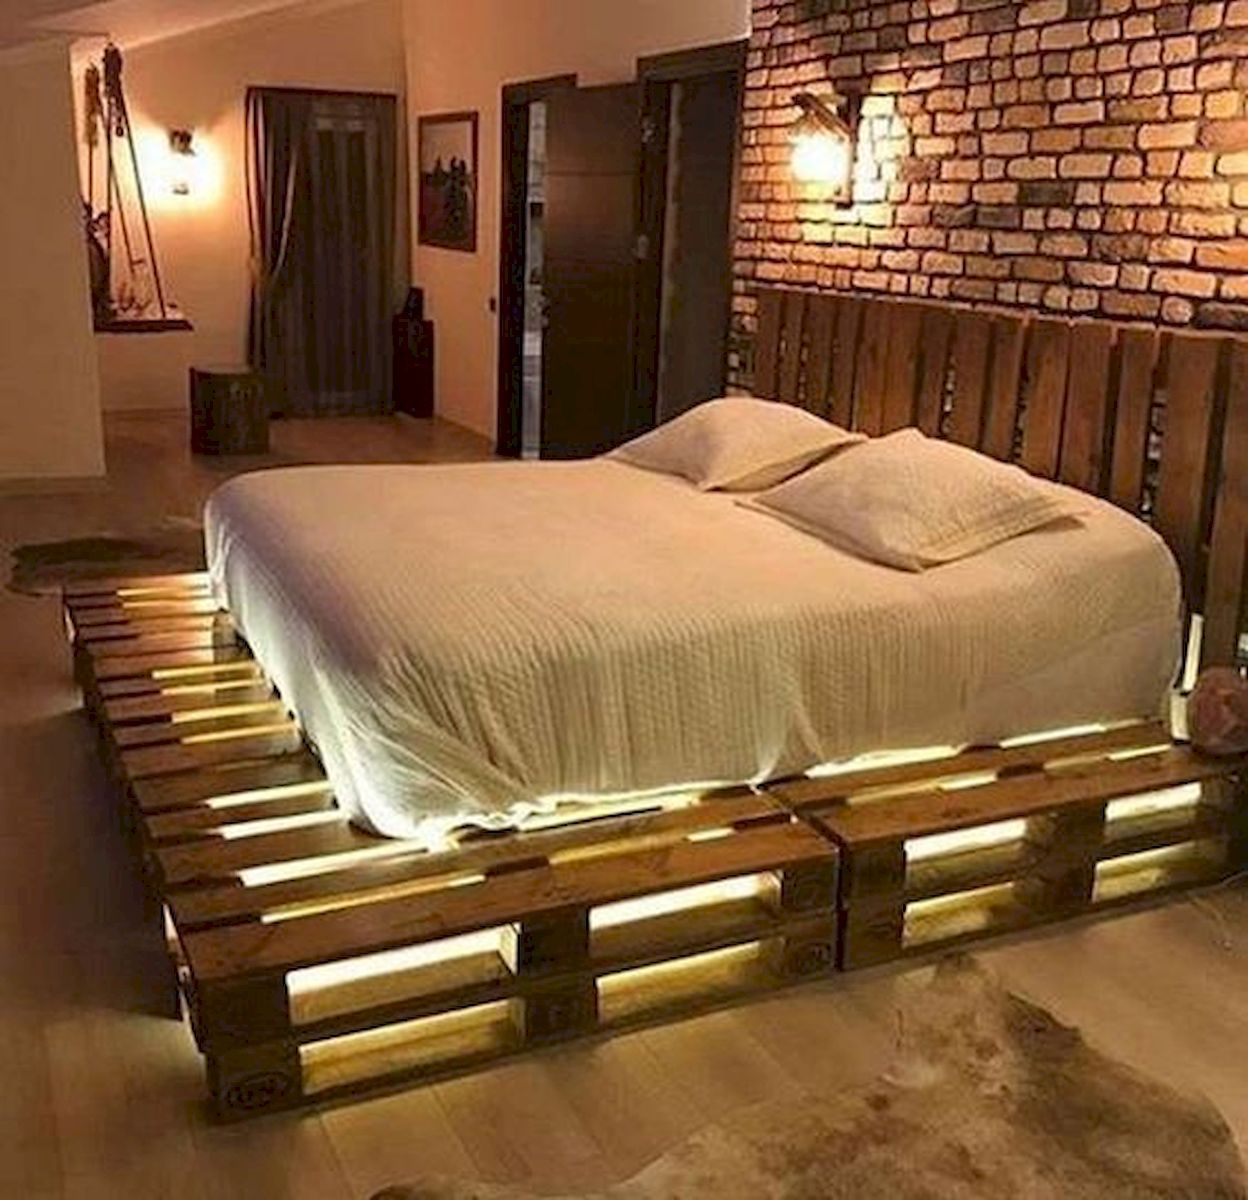 50 Creative Recycled DIY Projects Pallet Beds Design Ideas images